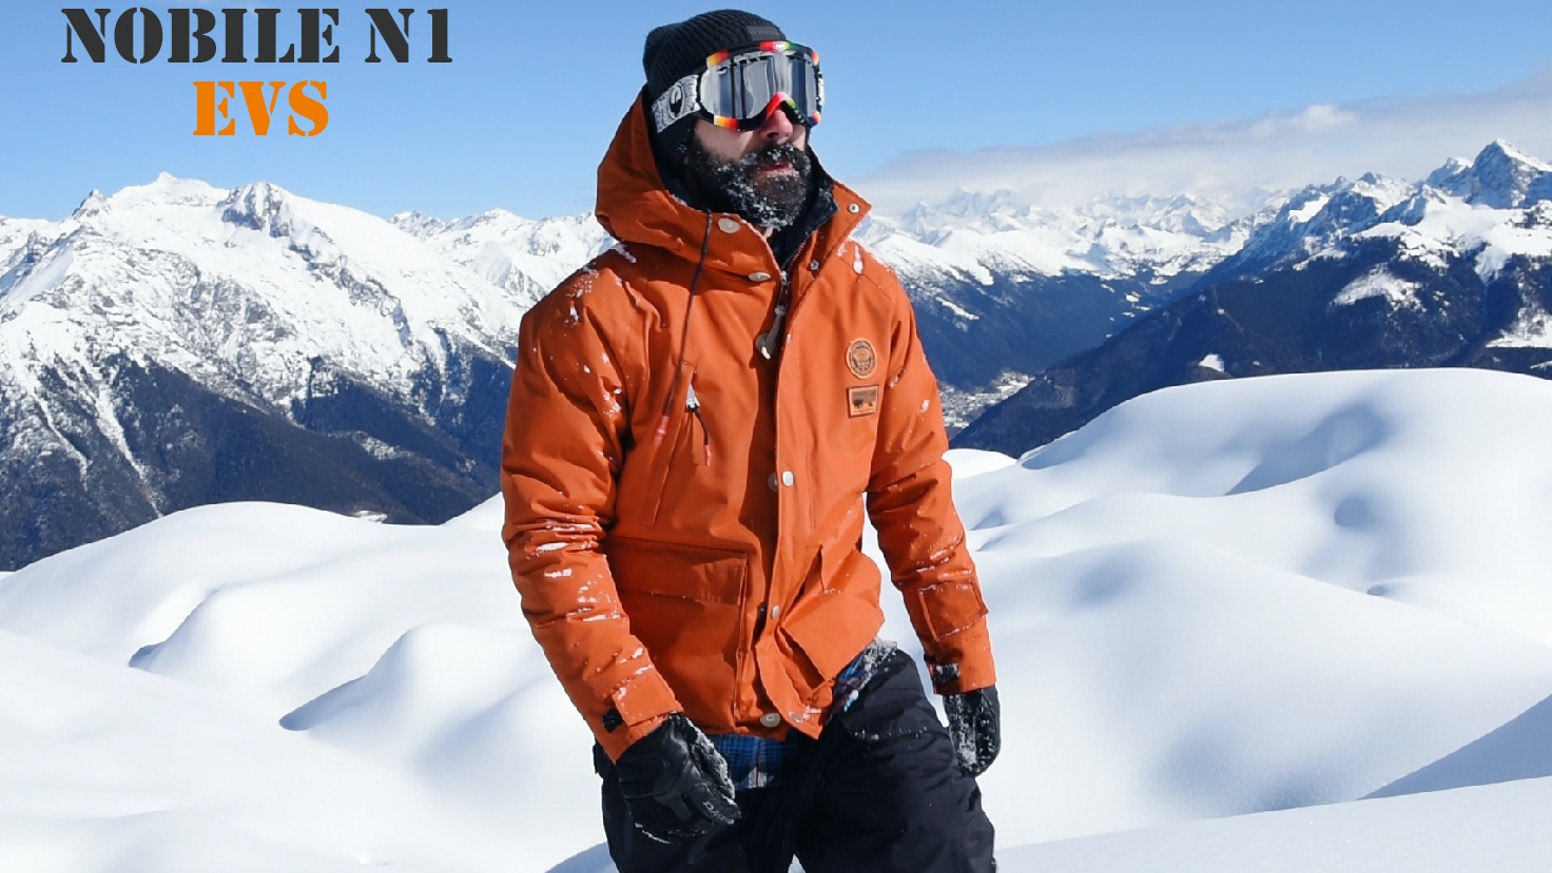 Nobile N1 EVS Jacket is a sports jacket, perfect for urban and outdoor  environments with